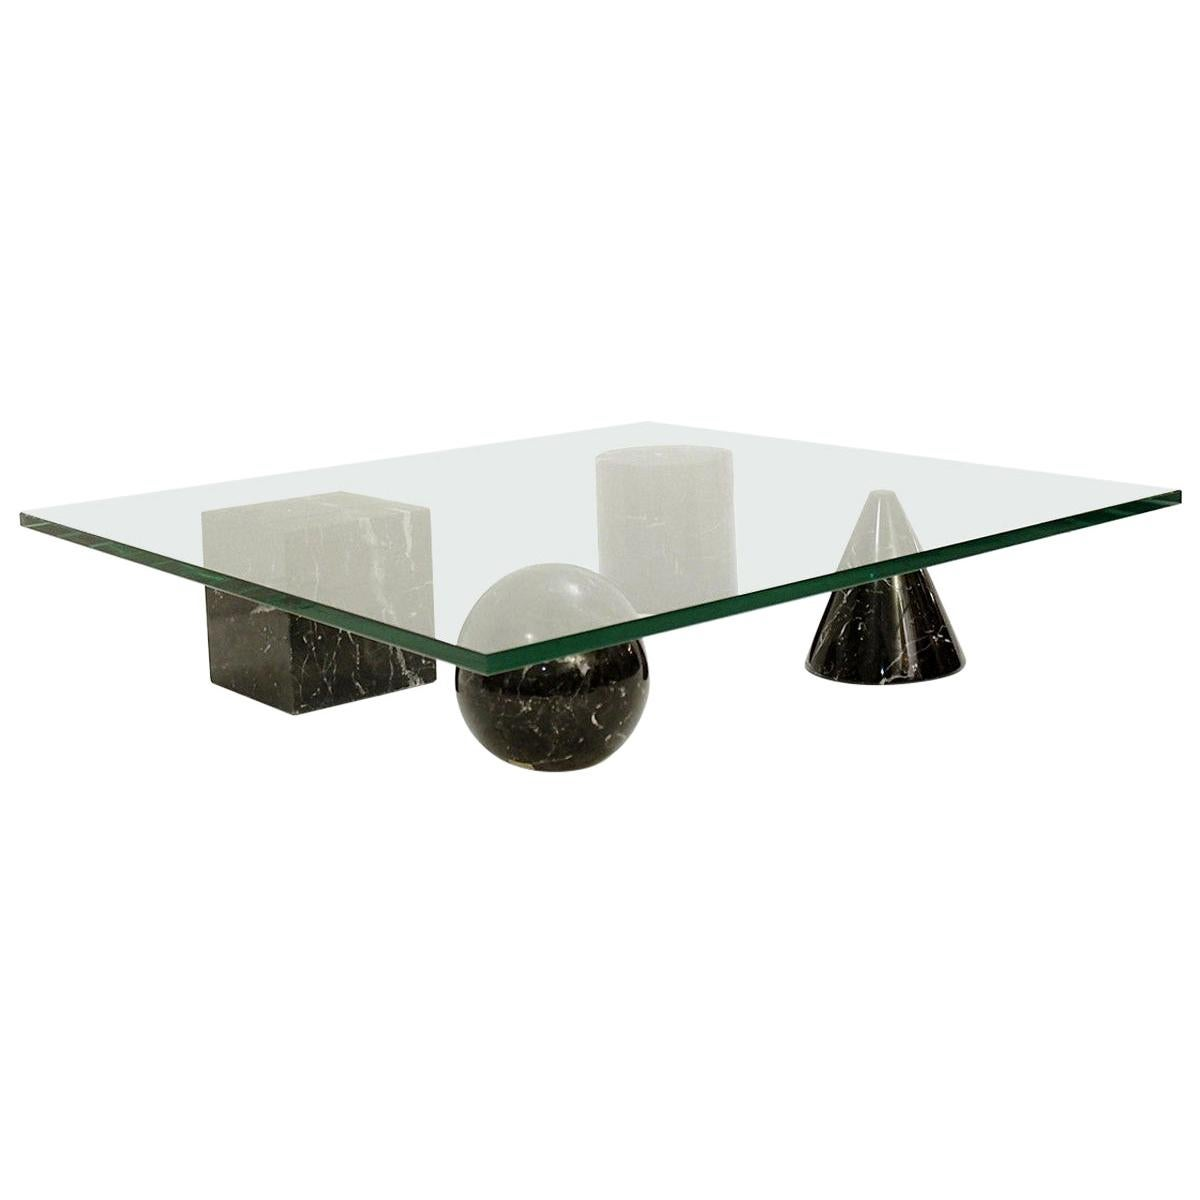 Massimo and Lella Vignelli 'Metaphora' Coffee Table in Black Marble and Glass